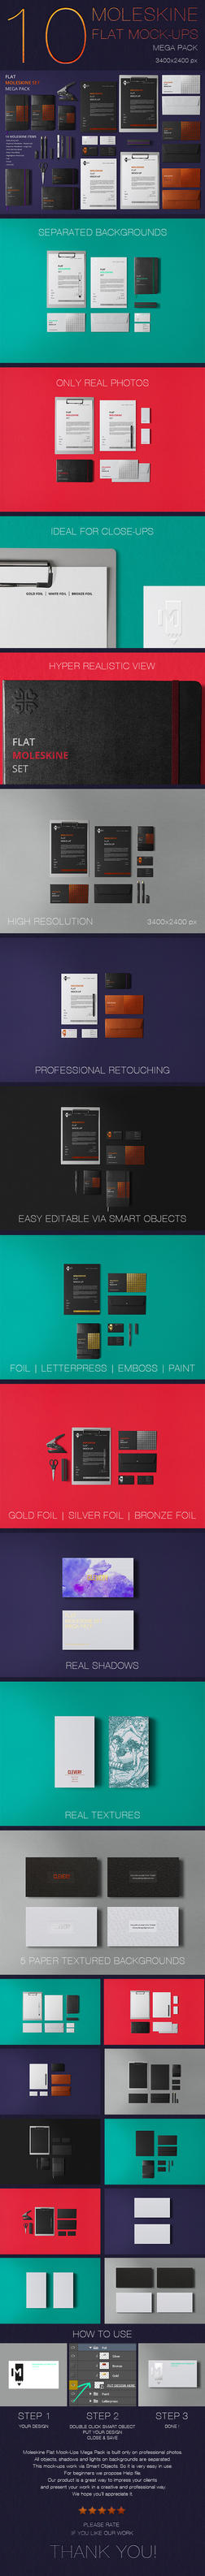 behance presentationcleverydesign on deviantart, Presentation templates